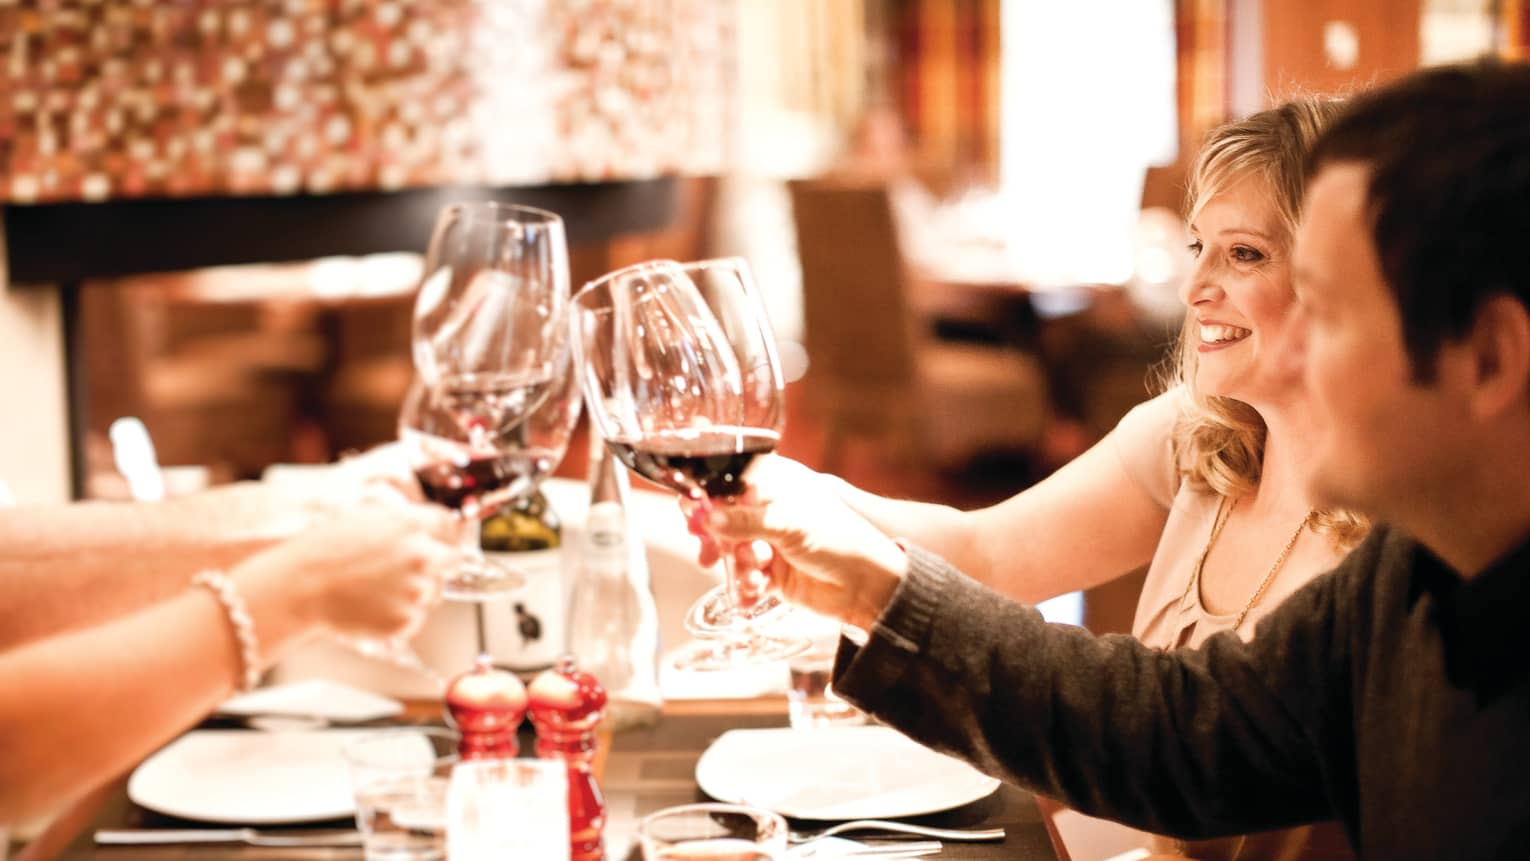 Diners toast with wine glasses at dining table, man and woman smile